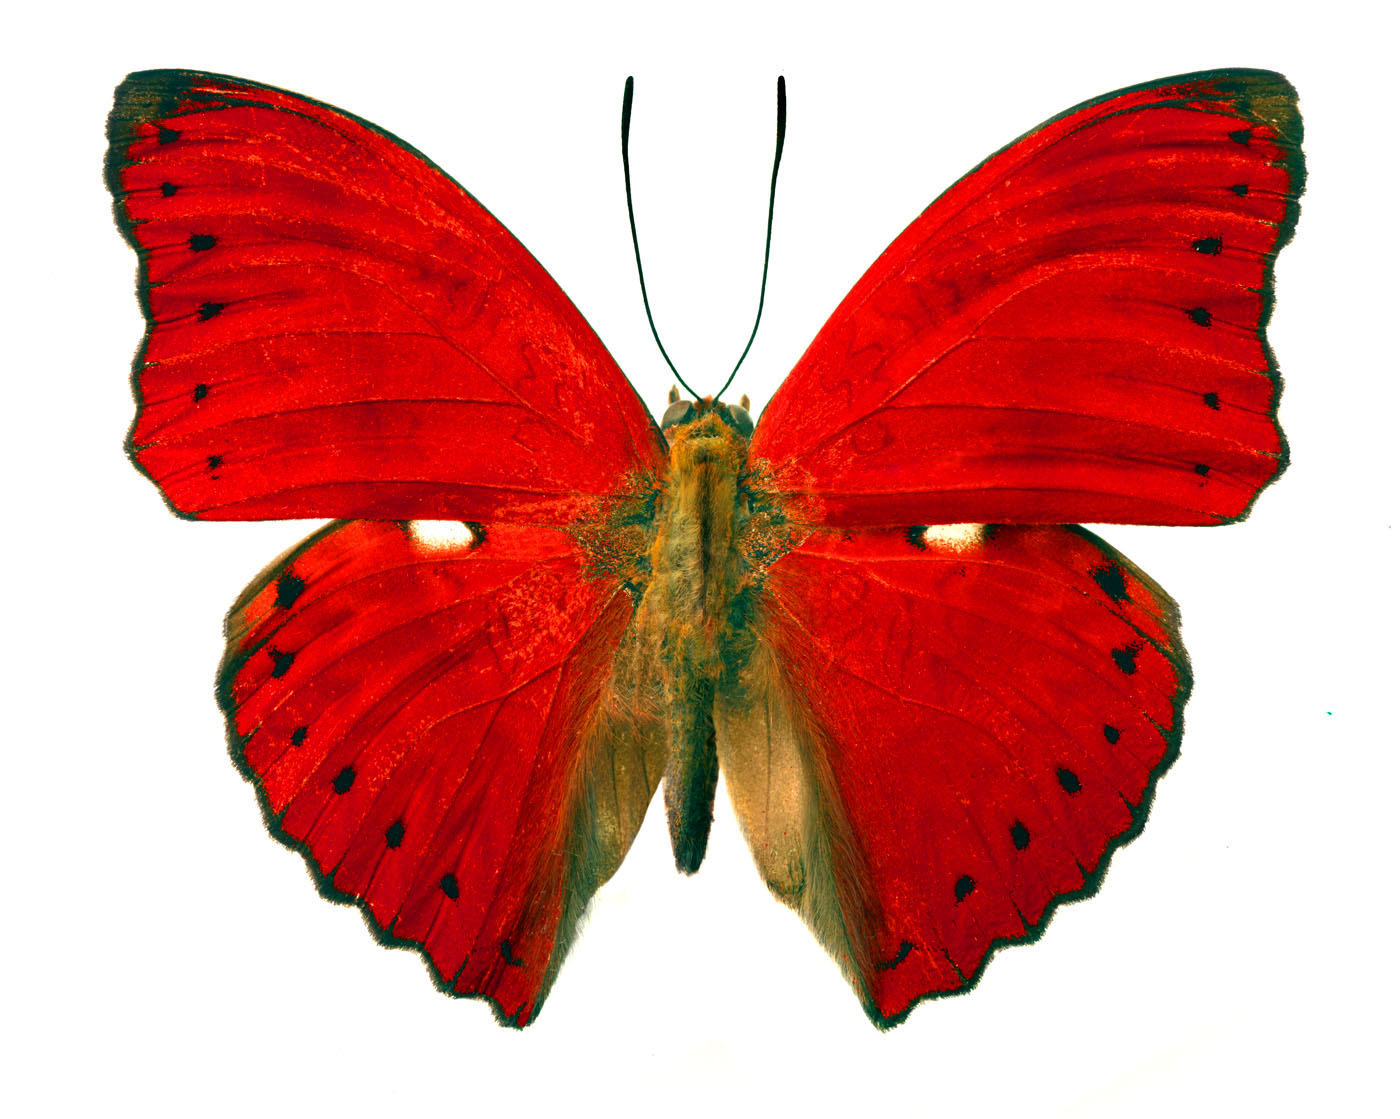 Pictures Of Red Butterflies - ClipArt Best